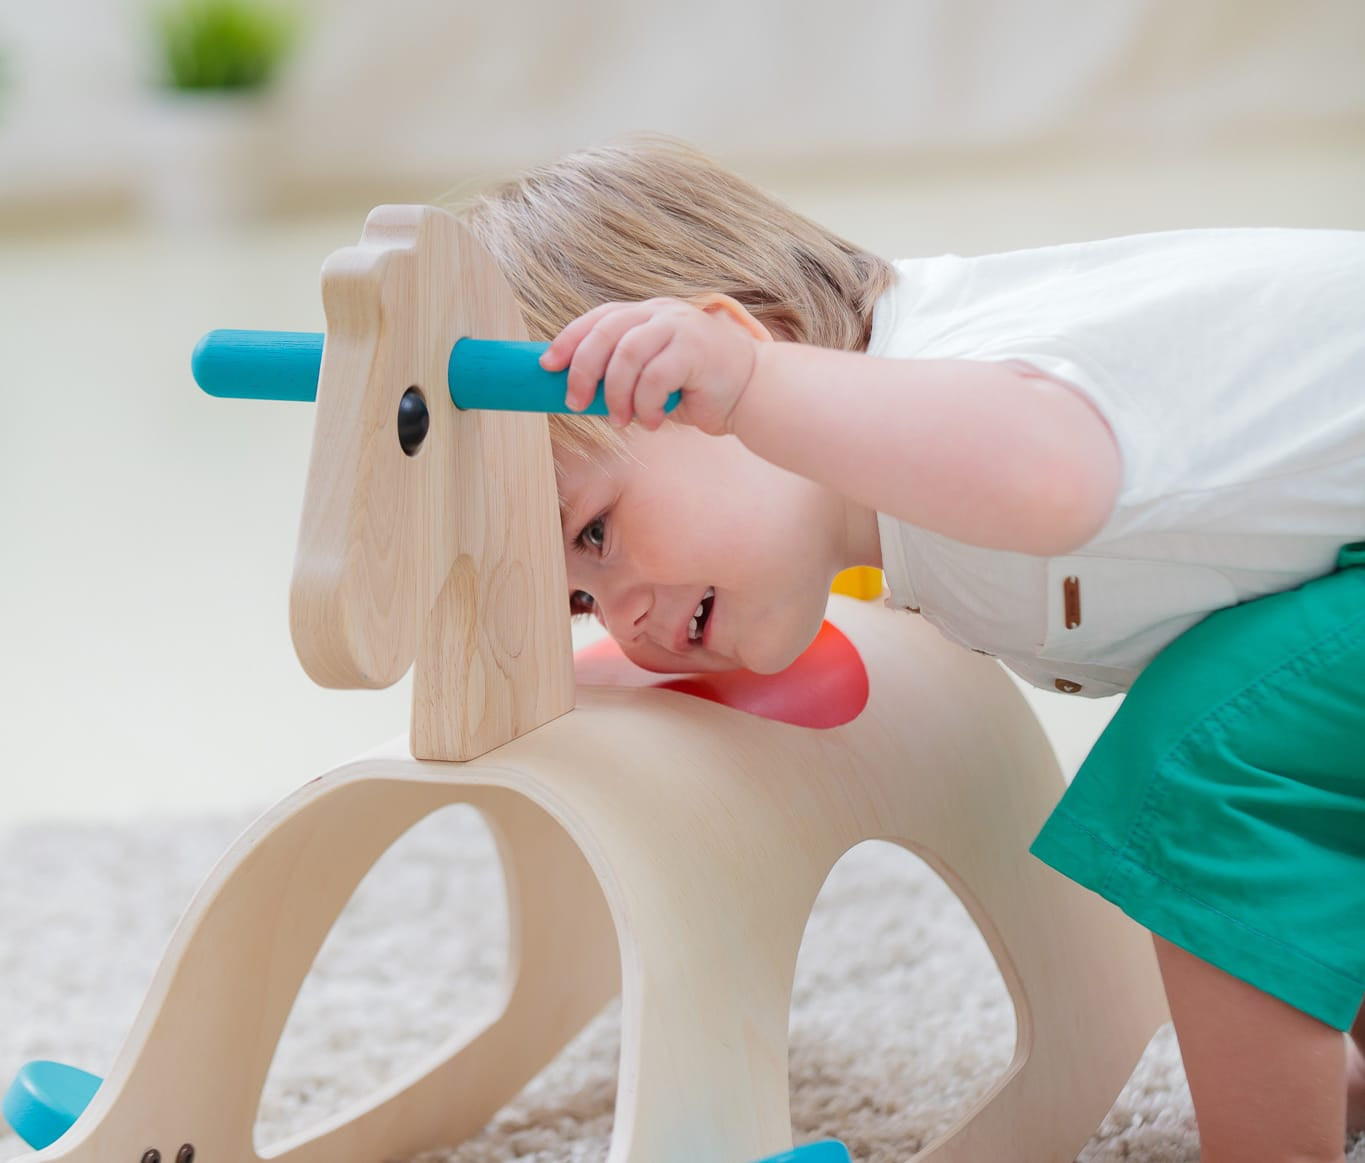 3403_PlanToys_PALOMINO_Active_Play_Gross_Motor_Coordination_Imagination_Language_and_Communications_2yrs_Wooden_toys_Education_toys_Safety_Toys_Non-toxic_1.jpg